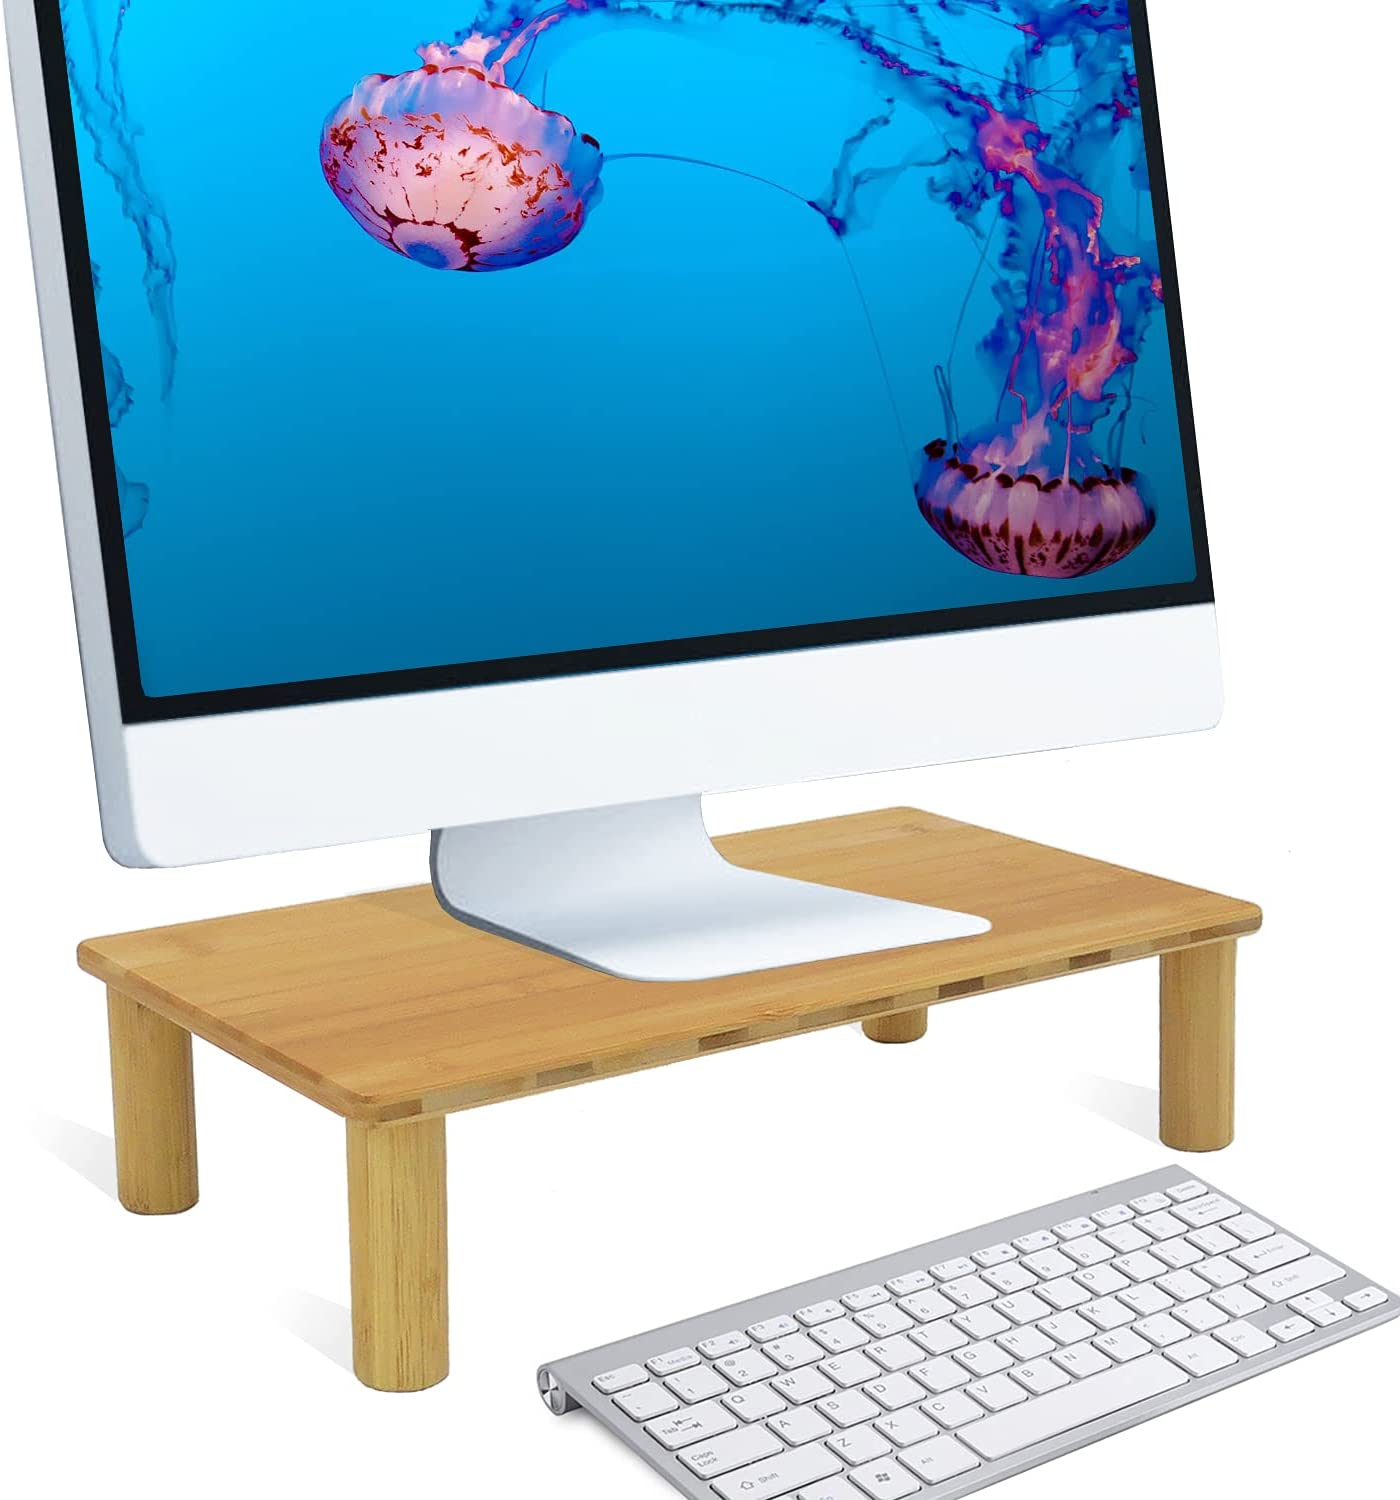 Monitor Stand Riser, Solid Bamboo Desktop Ergonomic Riser for Home and Office Computer Screen, Laptop, Printer and TVs - Storage Organizer for Desk Accessories